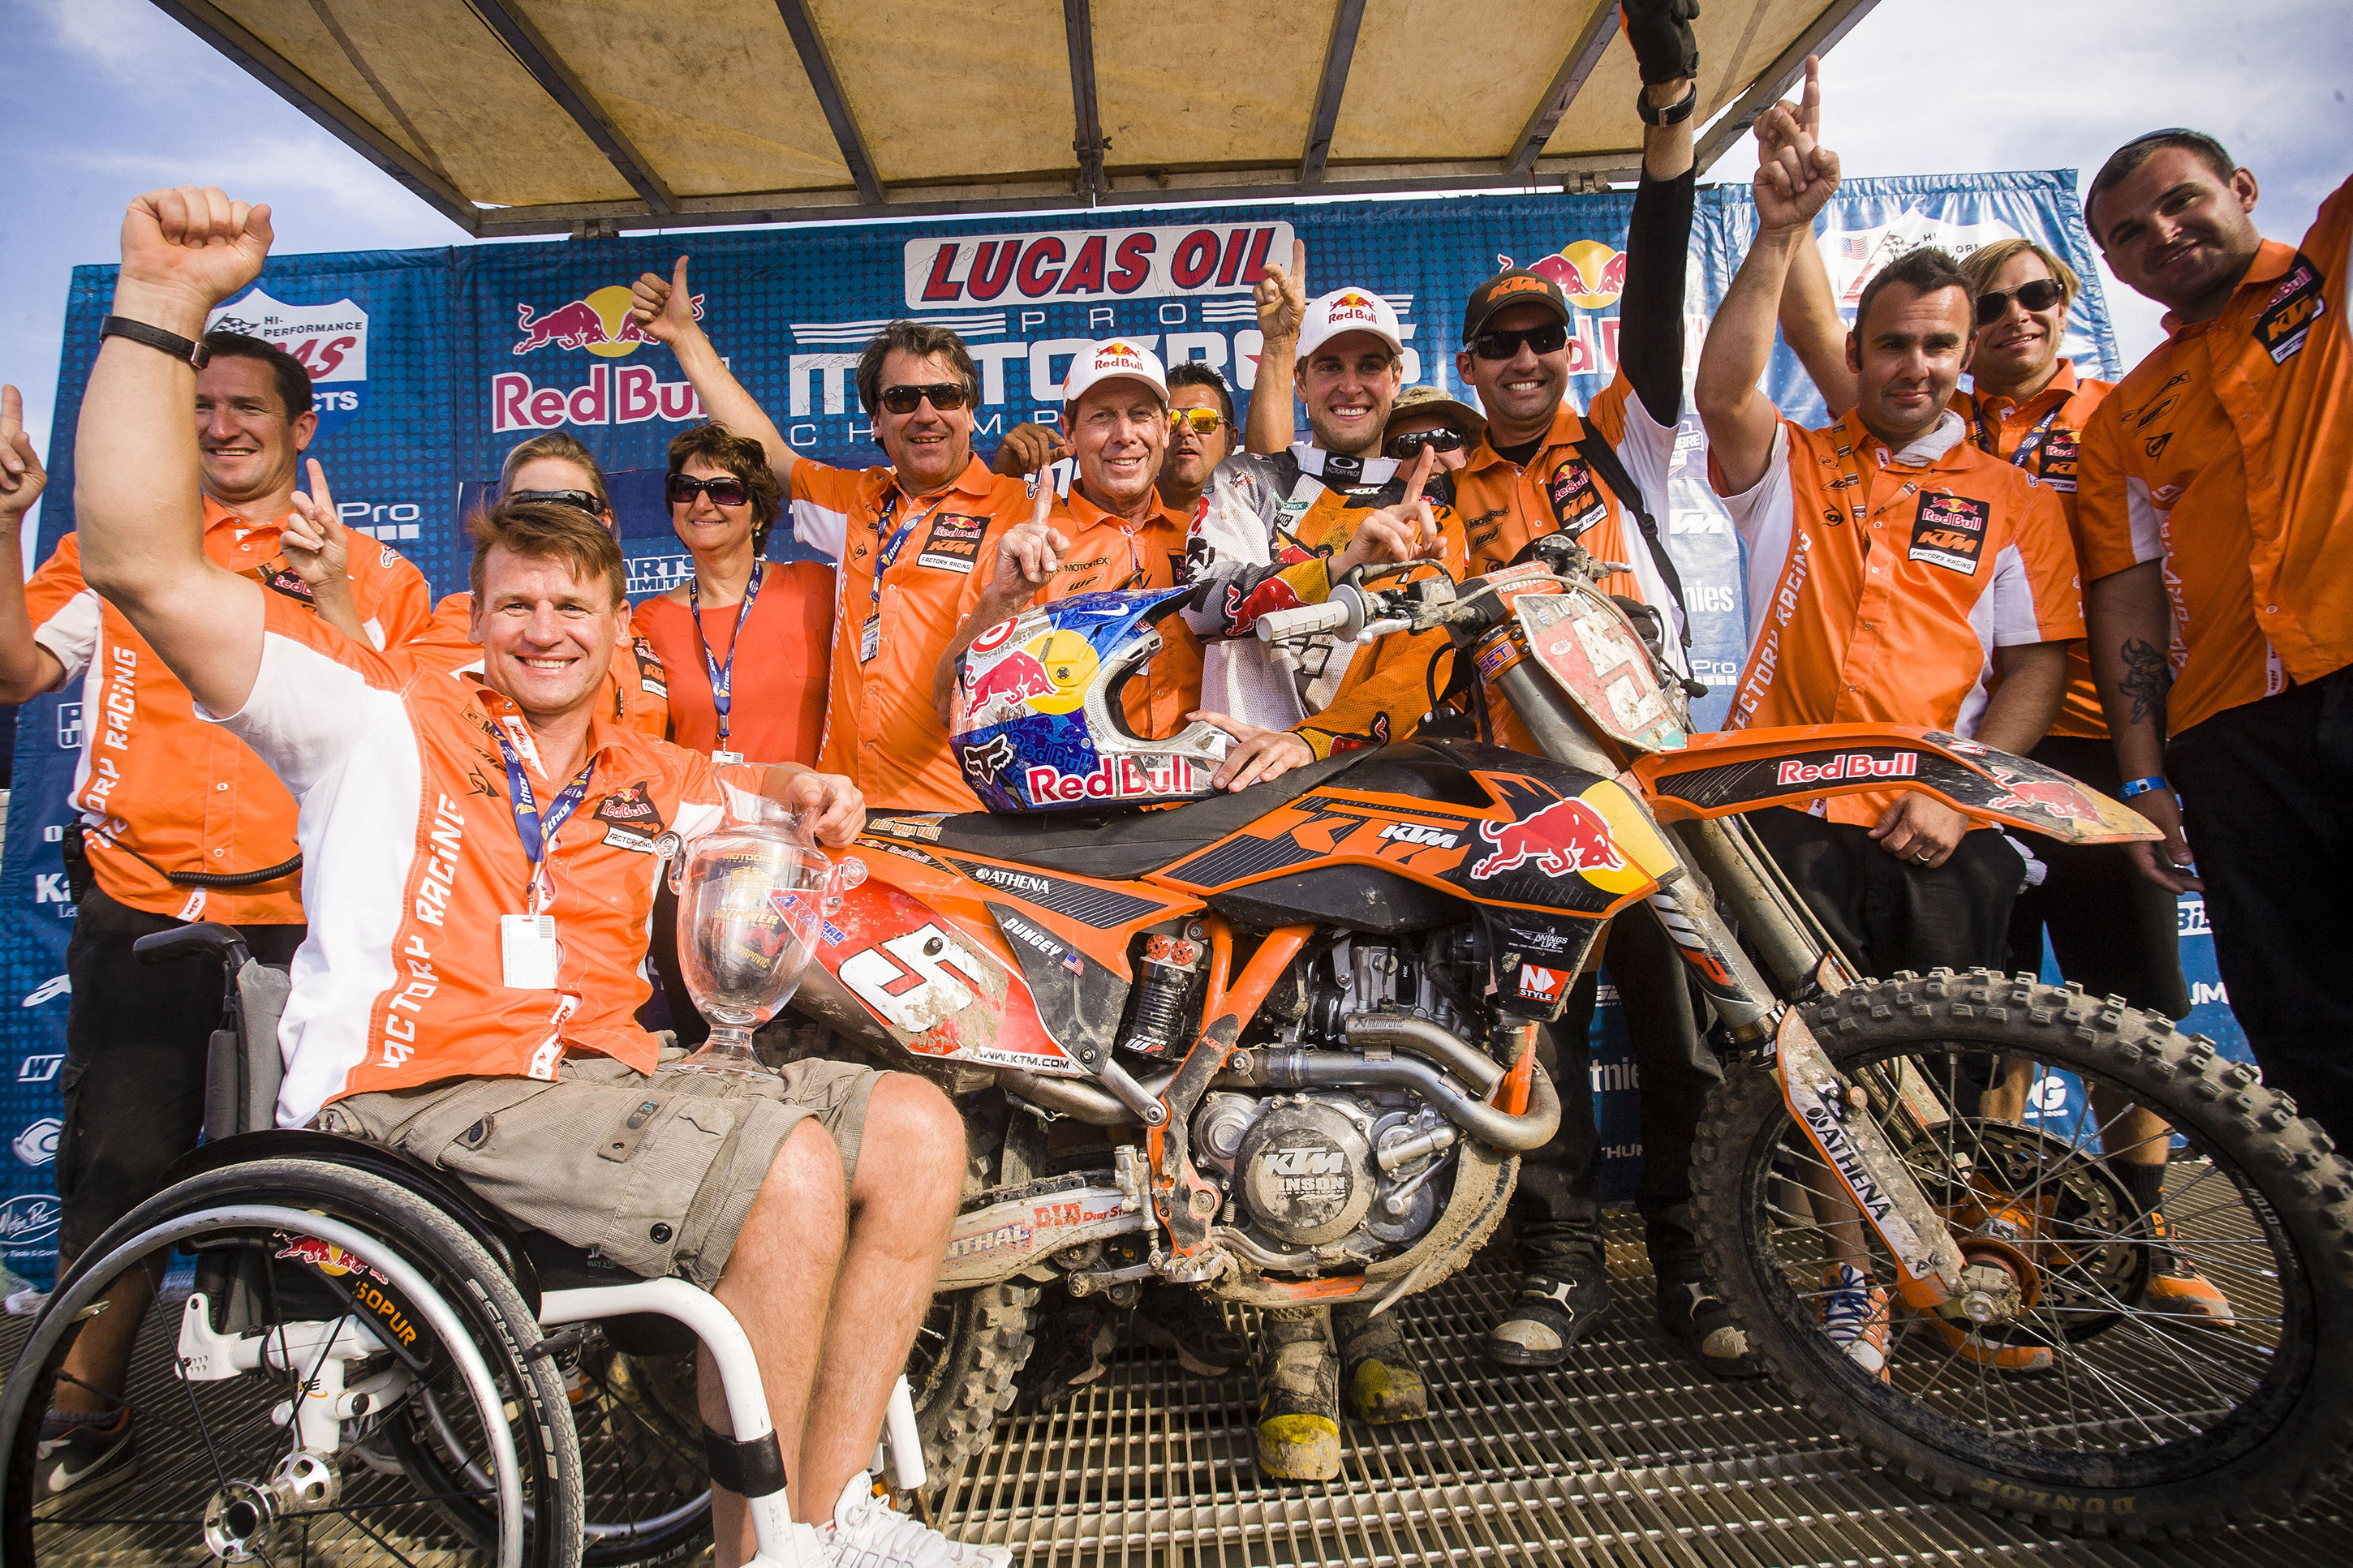 Ryan Dungey and KTM USA team members pose for a winners portrait at the AMA Pro Motocross Championship 2012 at Lake Elsinore in California, USA on September 8th, 2012 // Frank Hoppen / Red Bull Content Pool // P-20120910-00120 // Usage for editorial use only // Please go to www.redbullcontentpool.com for further information. //